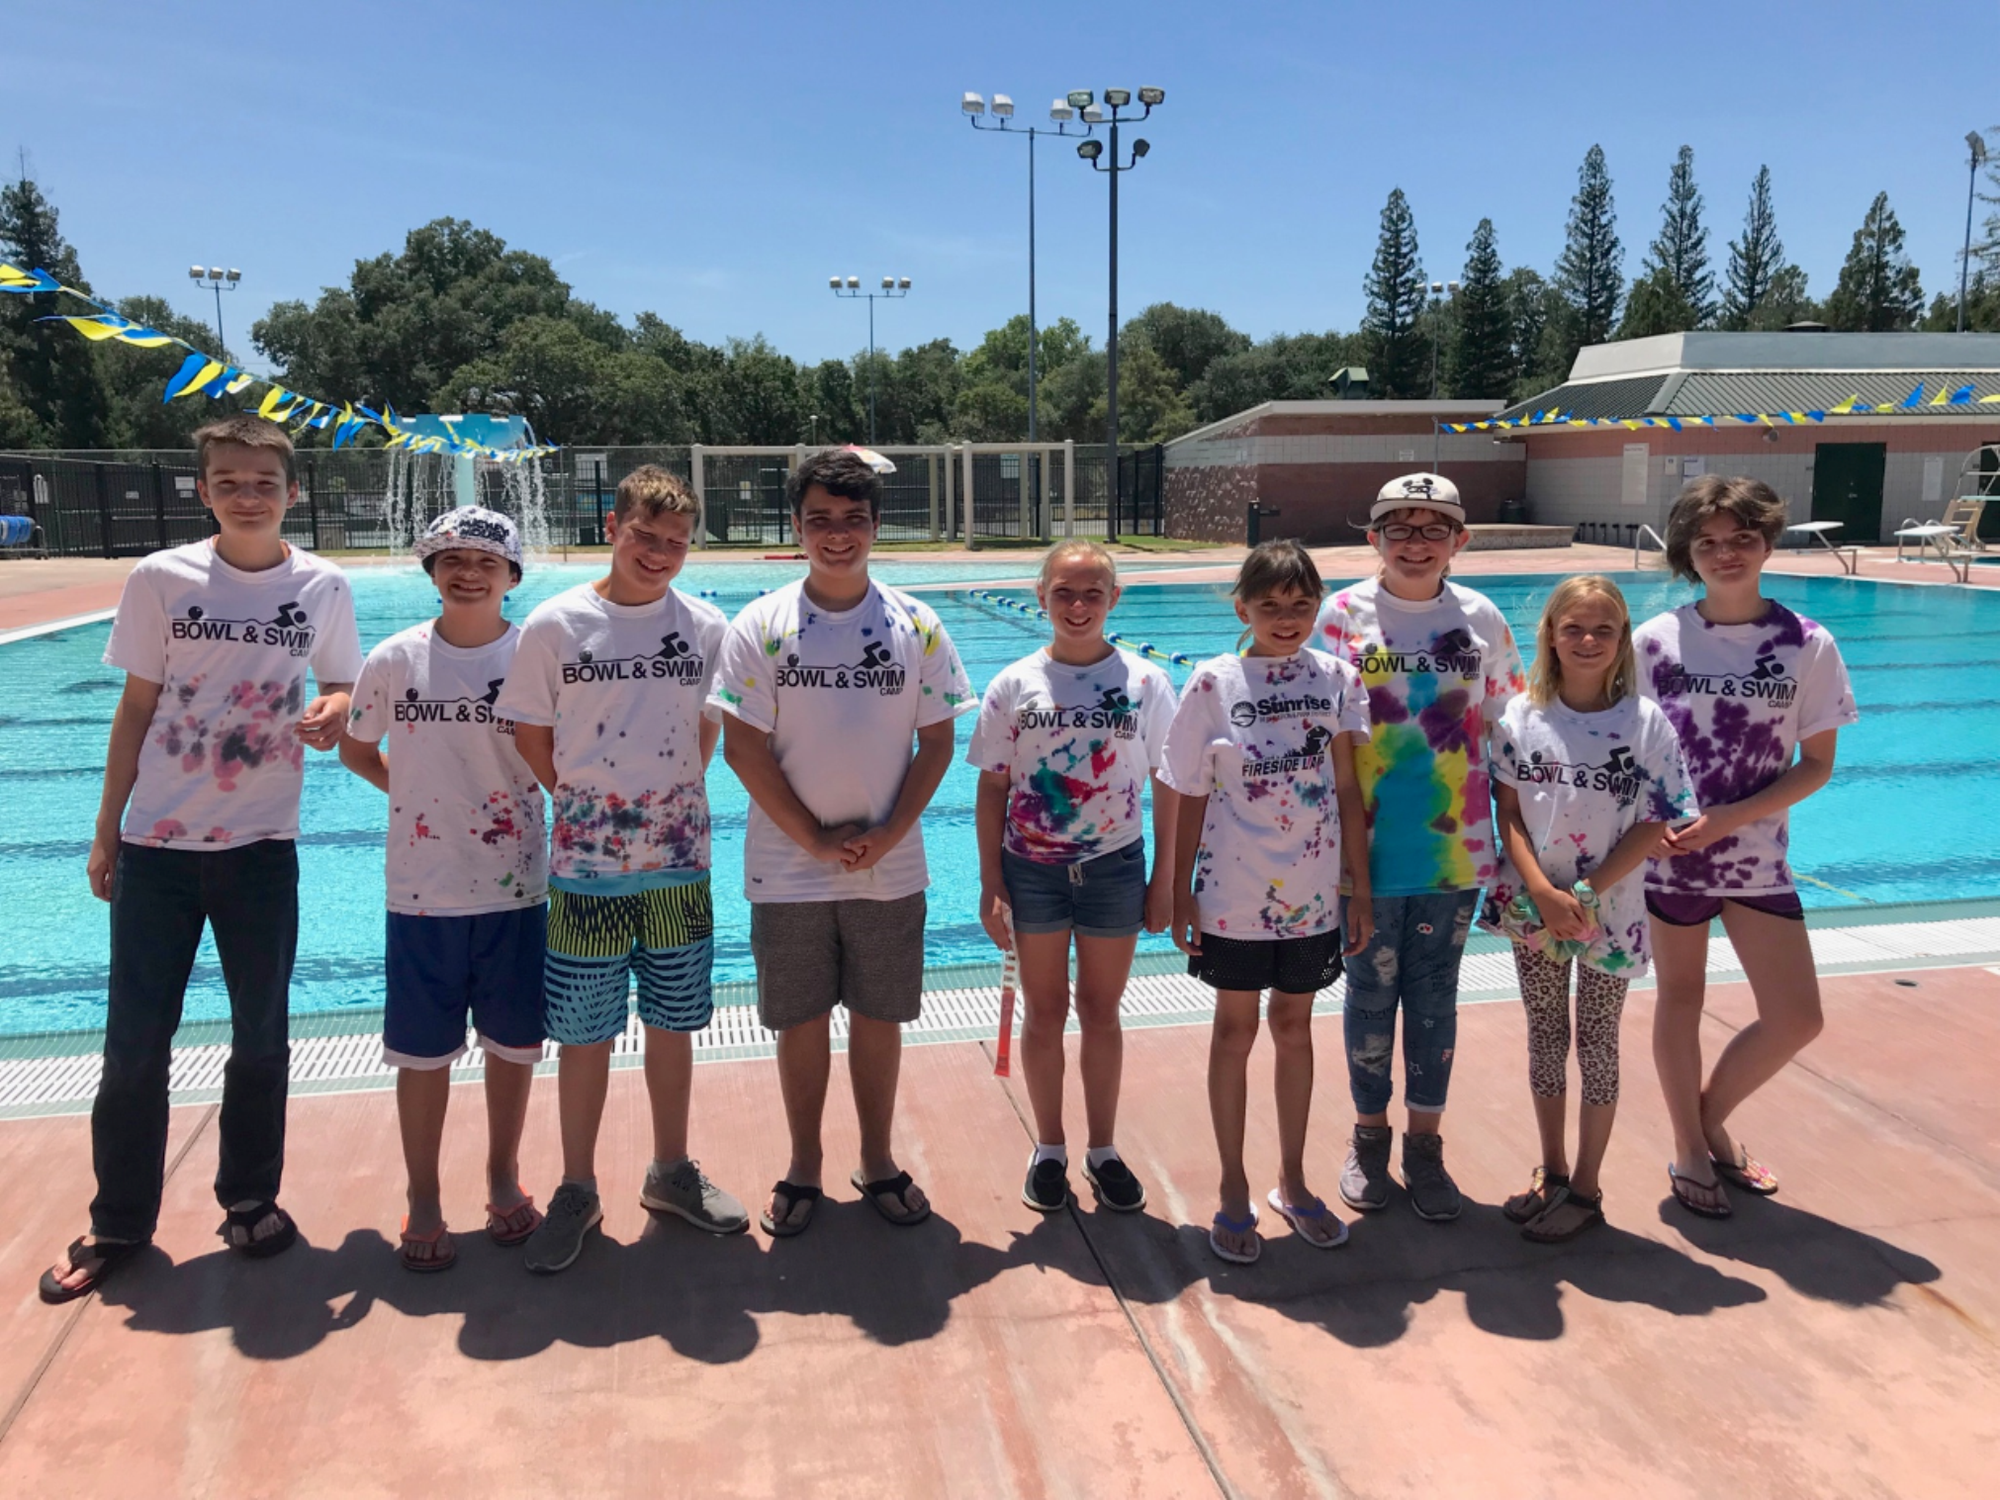 Bowl and Swim Campers in their shirts at the Rusch Pool